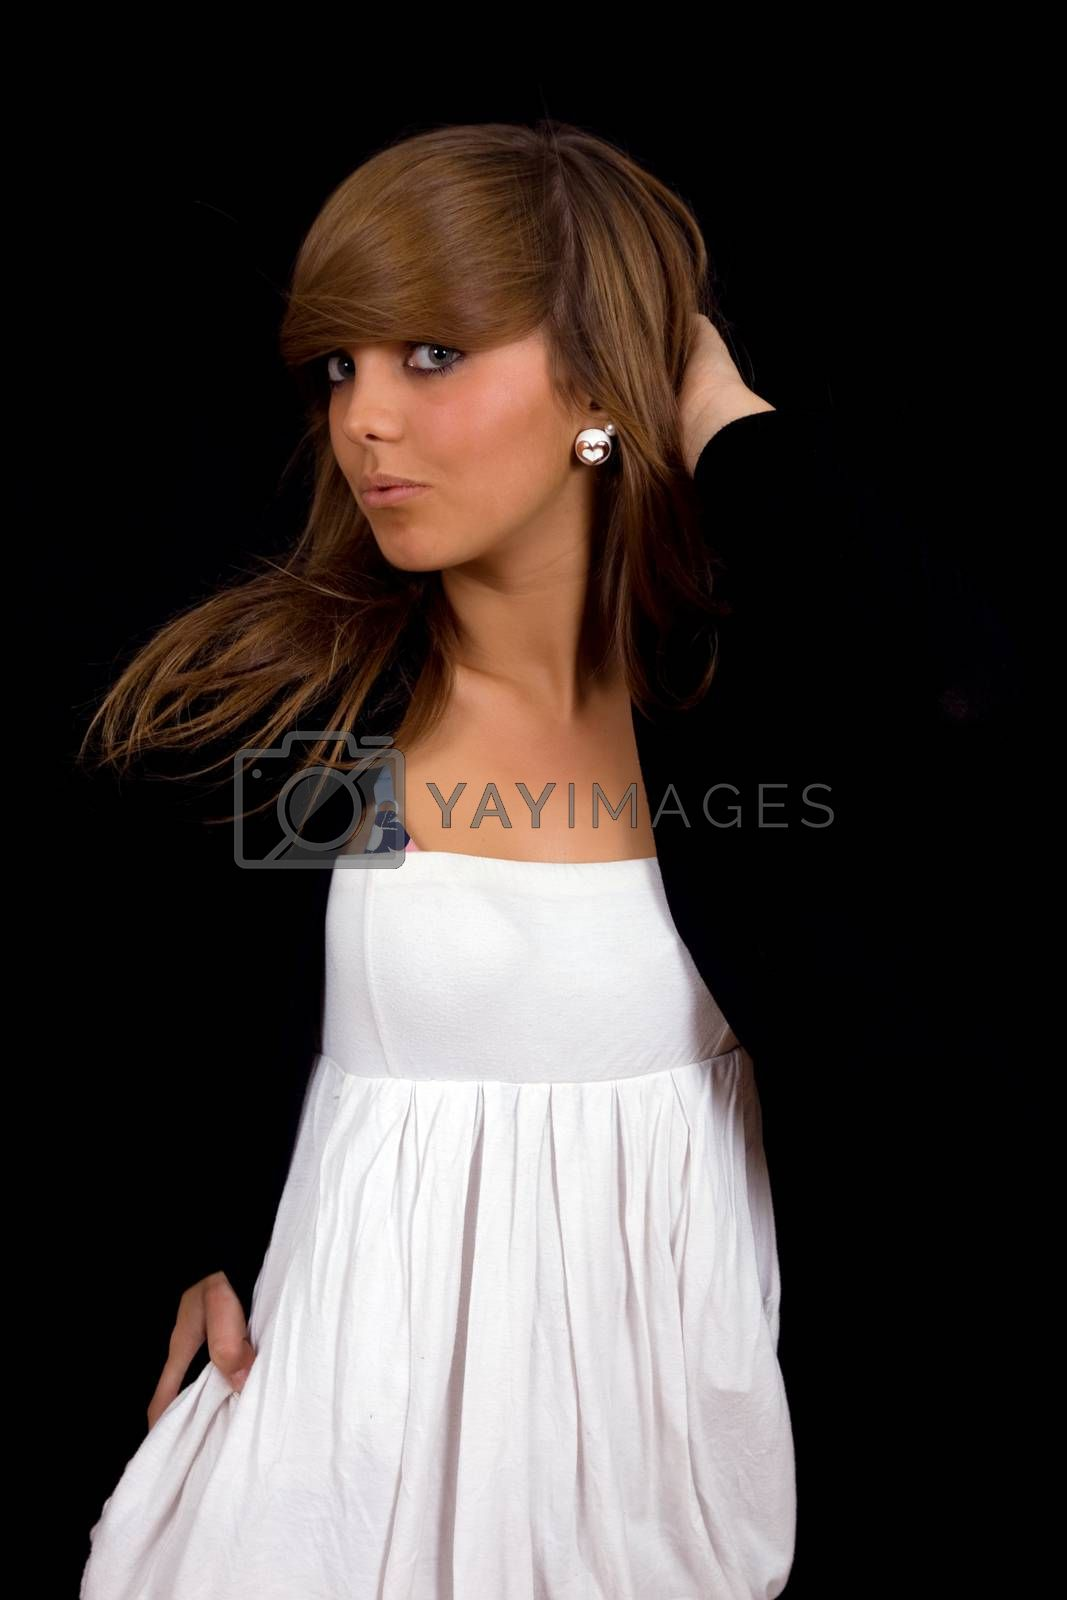 young beautiful girl portrait against black background